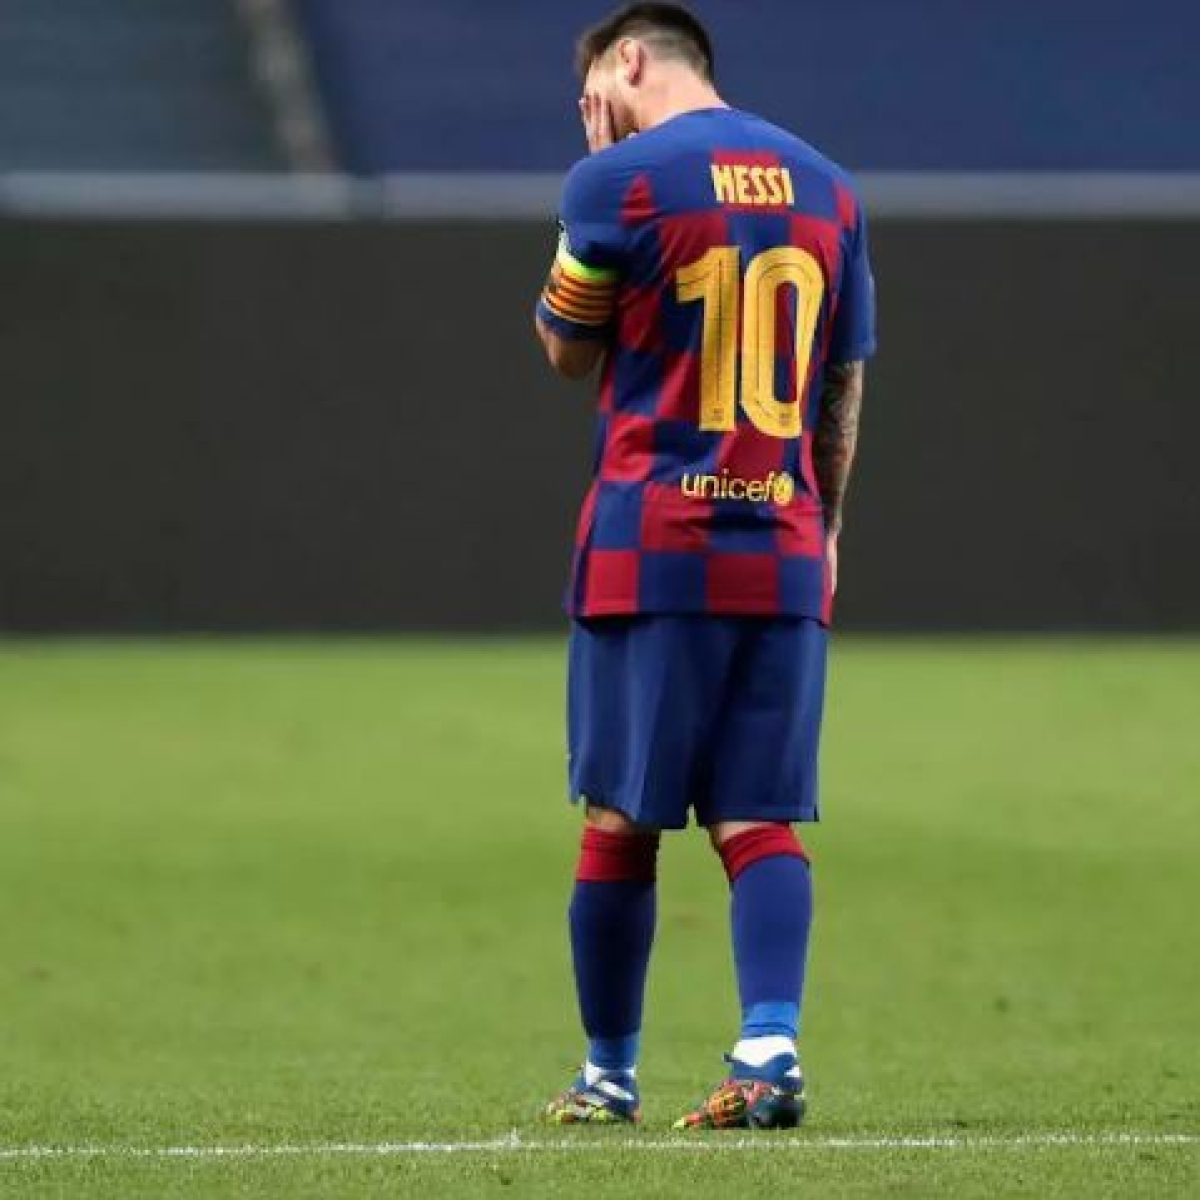 Watch: 'Lonely' Messi during Barcelona training session leaves fans devastated